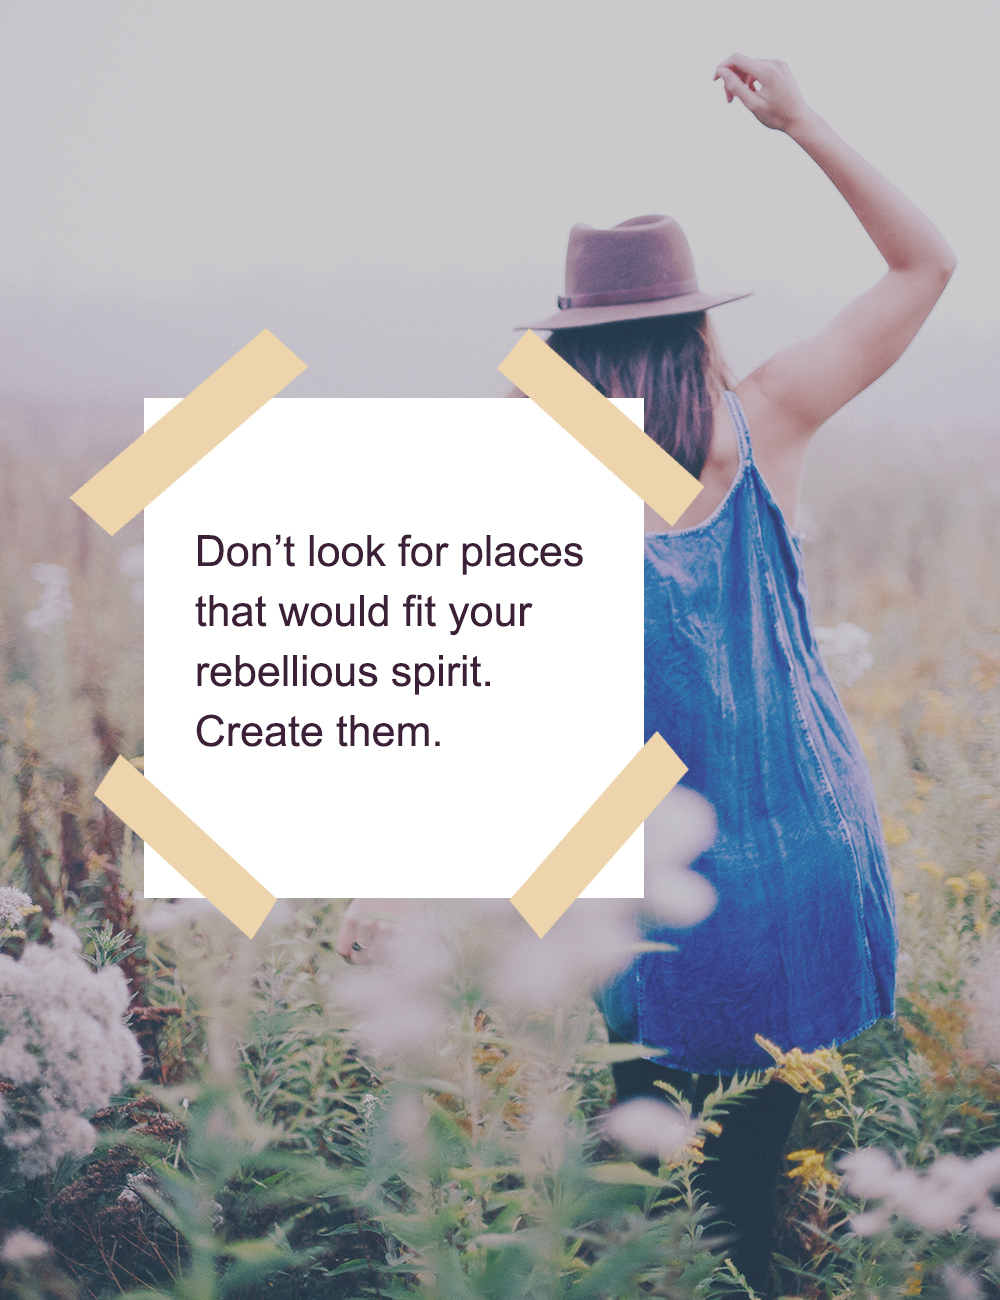 Don't look for places that would fit your rebellious spirit, create them instead.